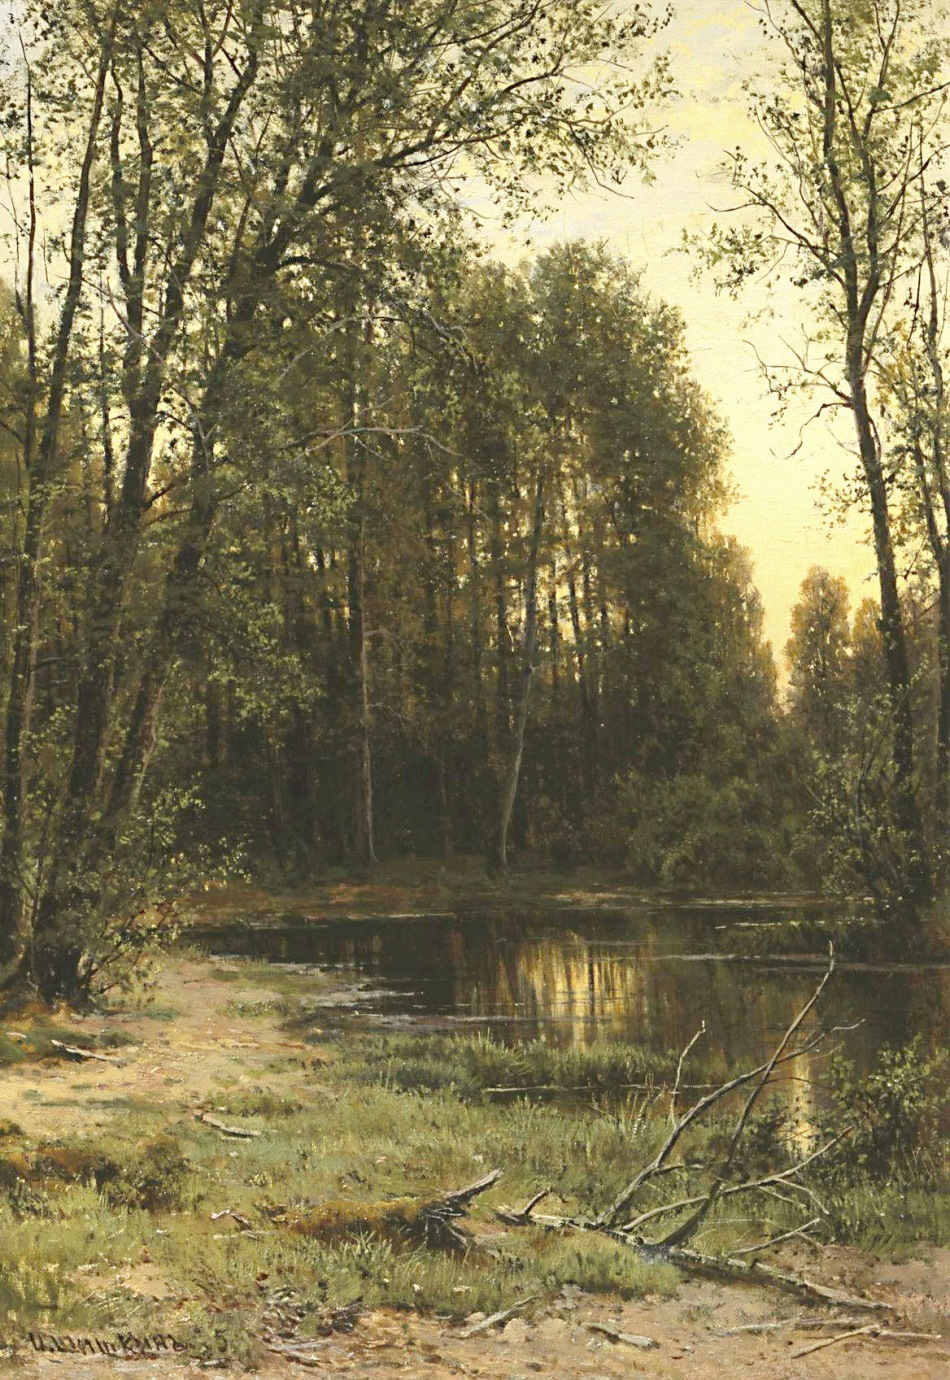 Ivan Shishkin – The Tretyakov Gallery Ж-276. Title: Речная заводь в лесу/River Backwater In The Forest. Date: 1889-1890. Materials: oil on canvas. Dimensions: ? Nr. Ж-276: Source: http://www.art-catalog.ru/data_picture_2016/picture/3/11364.jpg. I have changed the light, contrast and colors of the original photo.